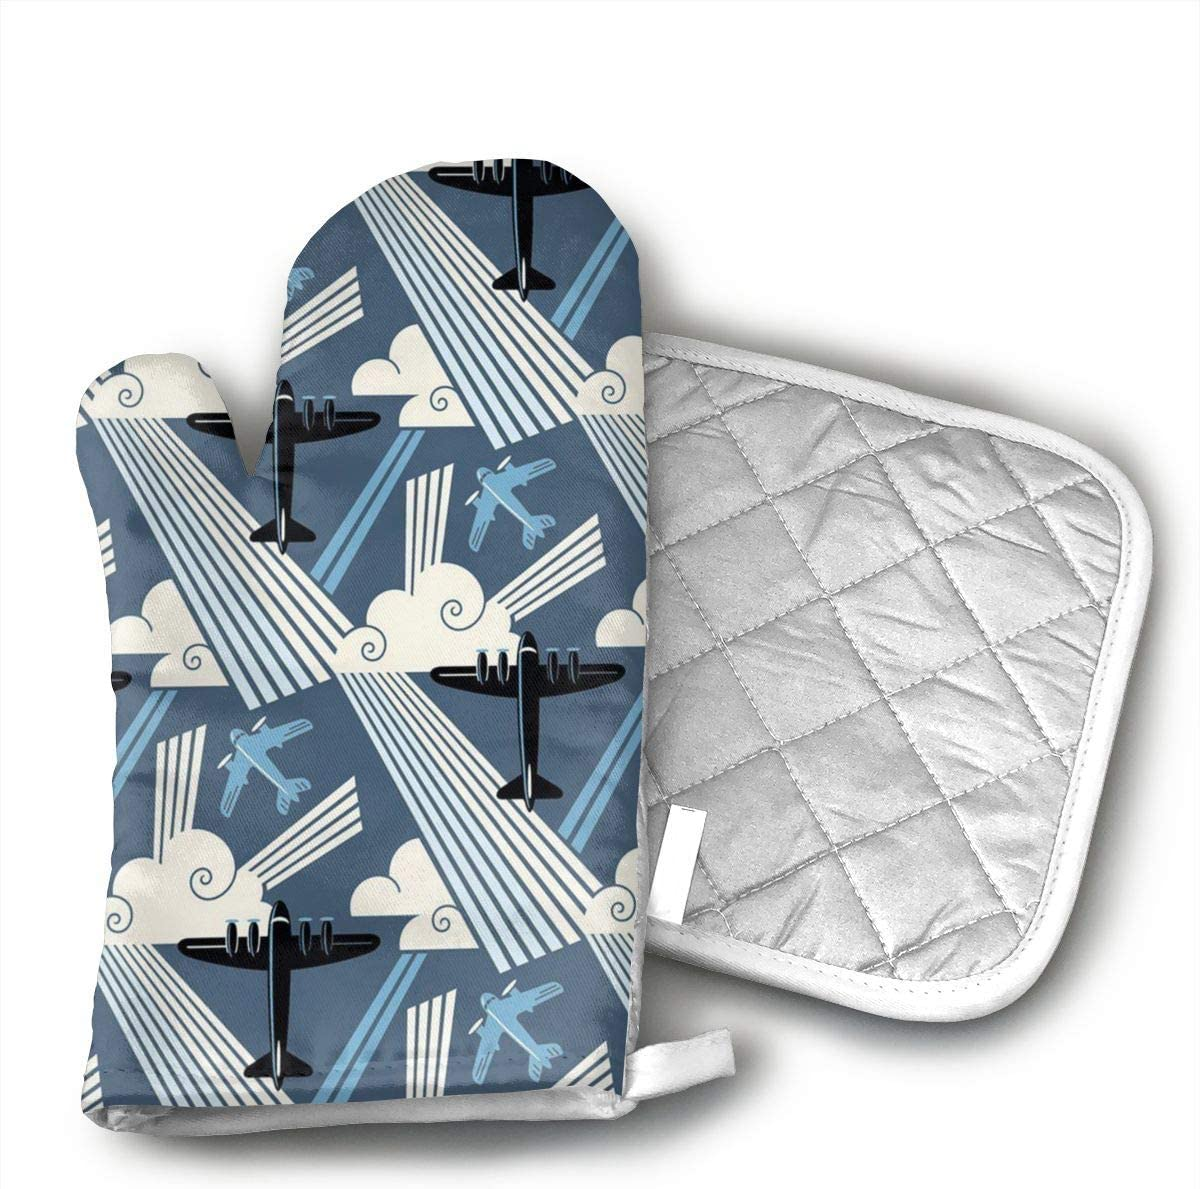 Wiqo9 Art Deco Modern Aviation Oven Mitts and Pot Holders Kitchen Mitten Cooking Gloves,Cooking, Baking, BBQ.